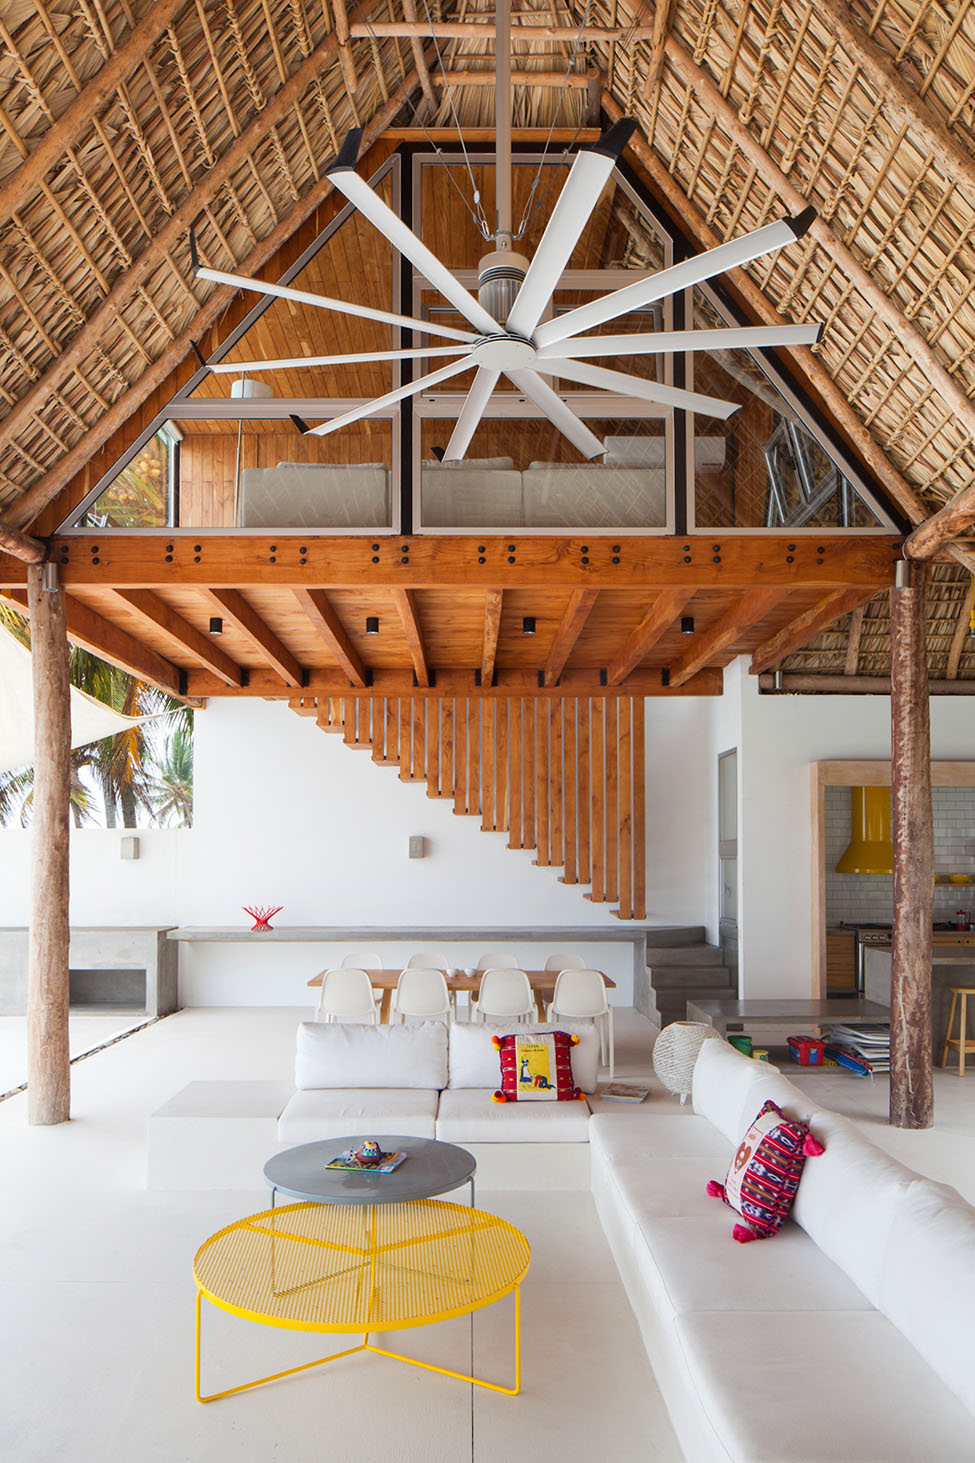 Beach bungalow casa azul in san salvador idesignarch for Contemporary beach house interior design